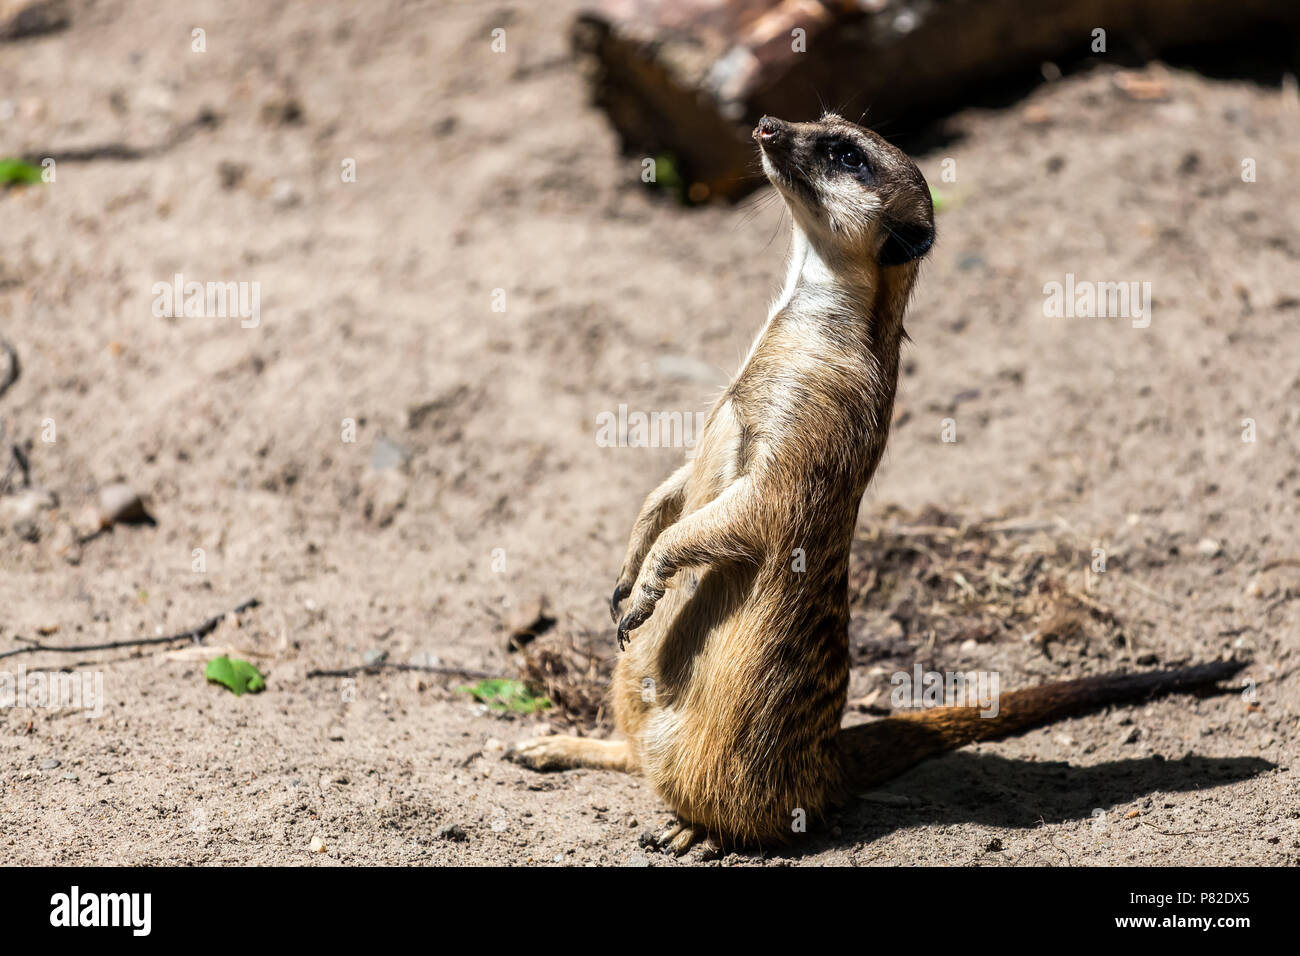 A Close Up Of The Adult Meerkat Monitors Its Territory And Birds